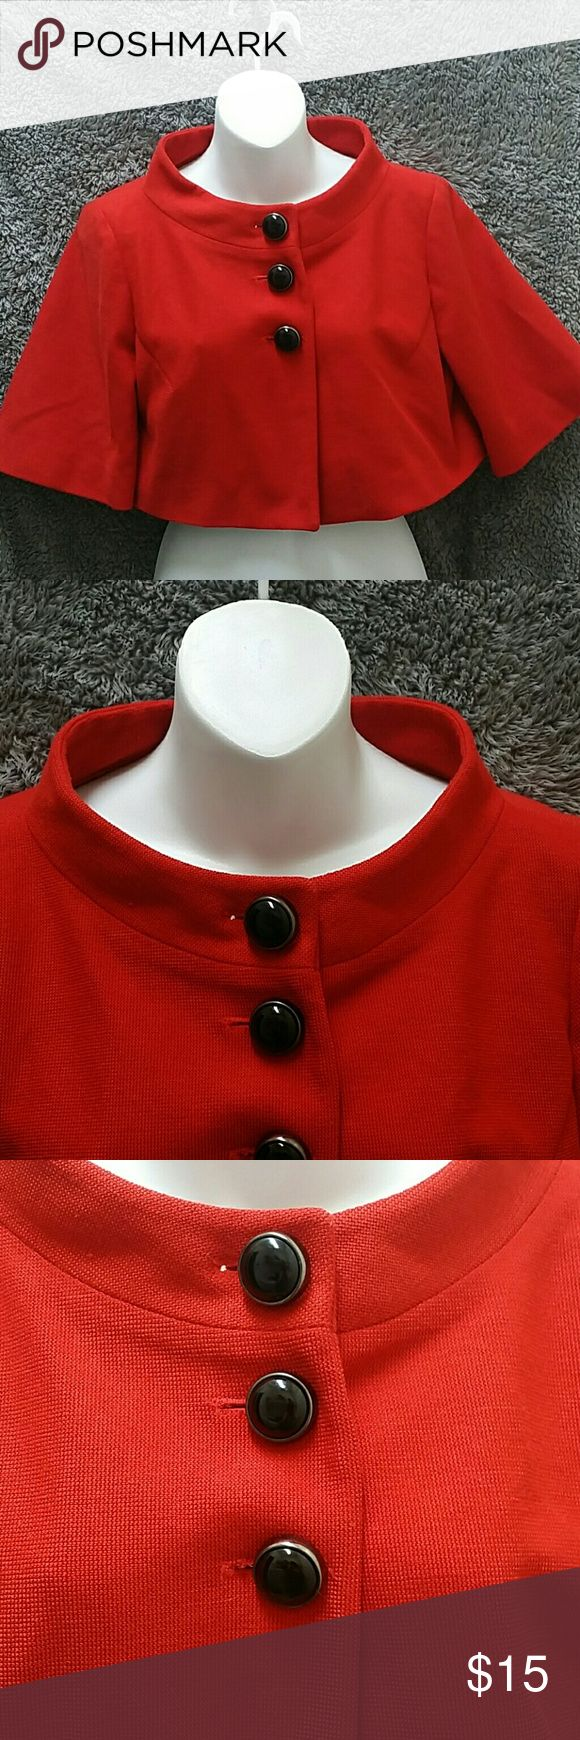 Forever 21 Bolero Jacket Pre-owned : great condition, no rips, tears, or stains. Bolero is a dark, red-orange color, great for summer, perfect for office attire. Bolero has a Jackie O feel to it, very 60's, Mad Men. Feel free to ask questions or request different pictures. Forever 21 Jackets & Coats Capes